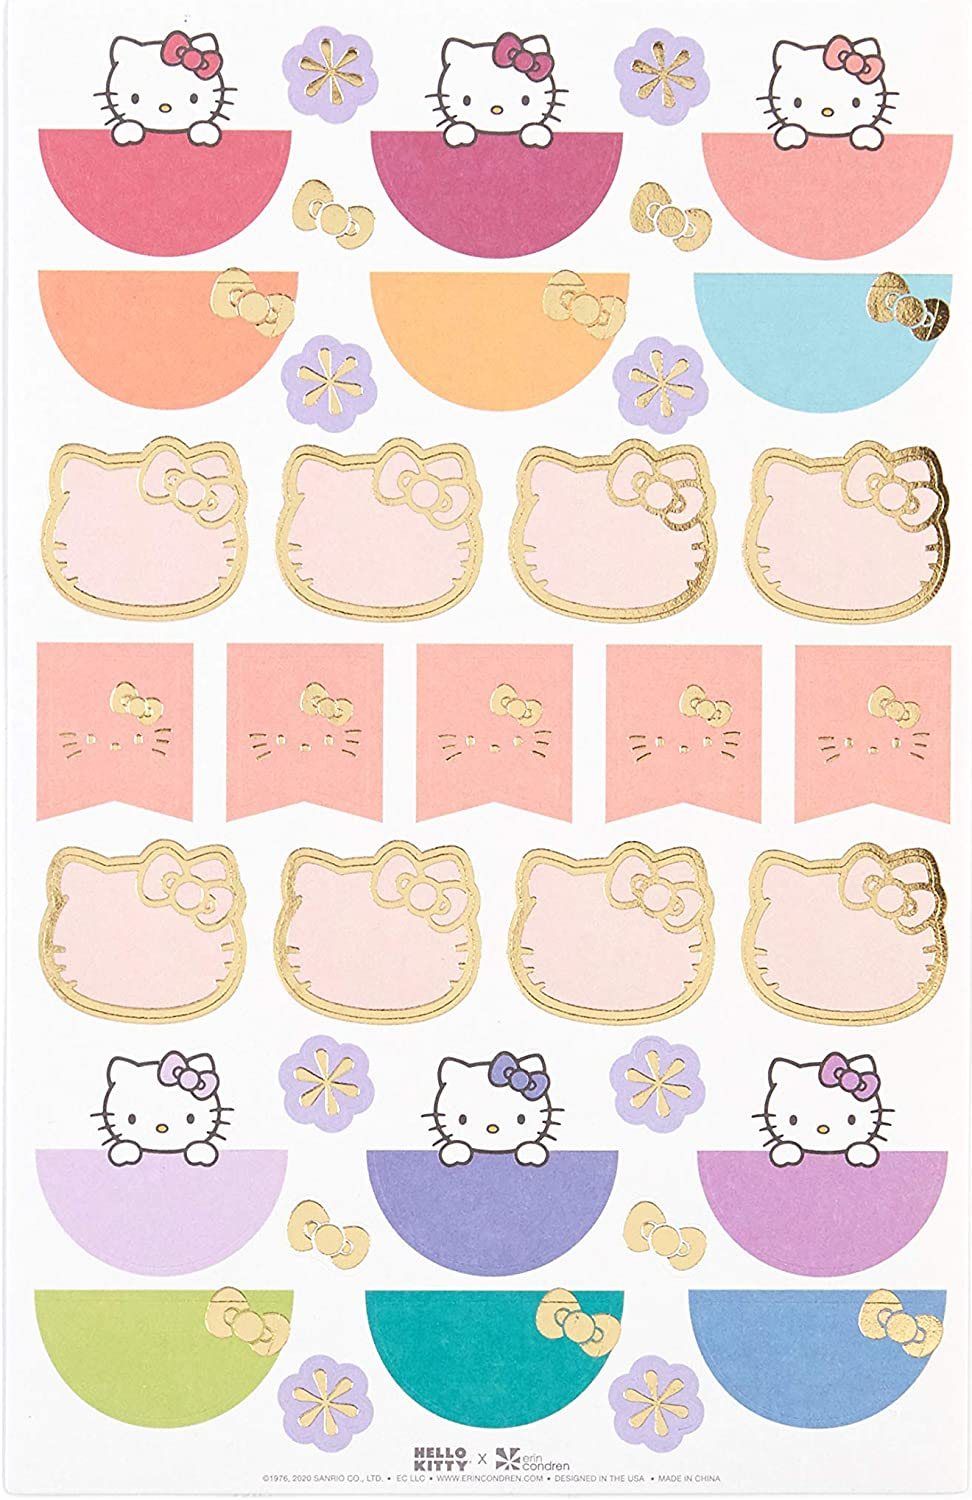 Fun and Cute Stickers for Customizing Planners 95 Stickers Total Notebooks Calendars and More 3 Pack Hello Kitty x Erin Condren Designer Sticker Pack